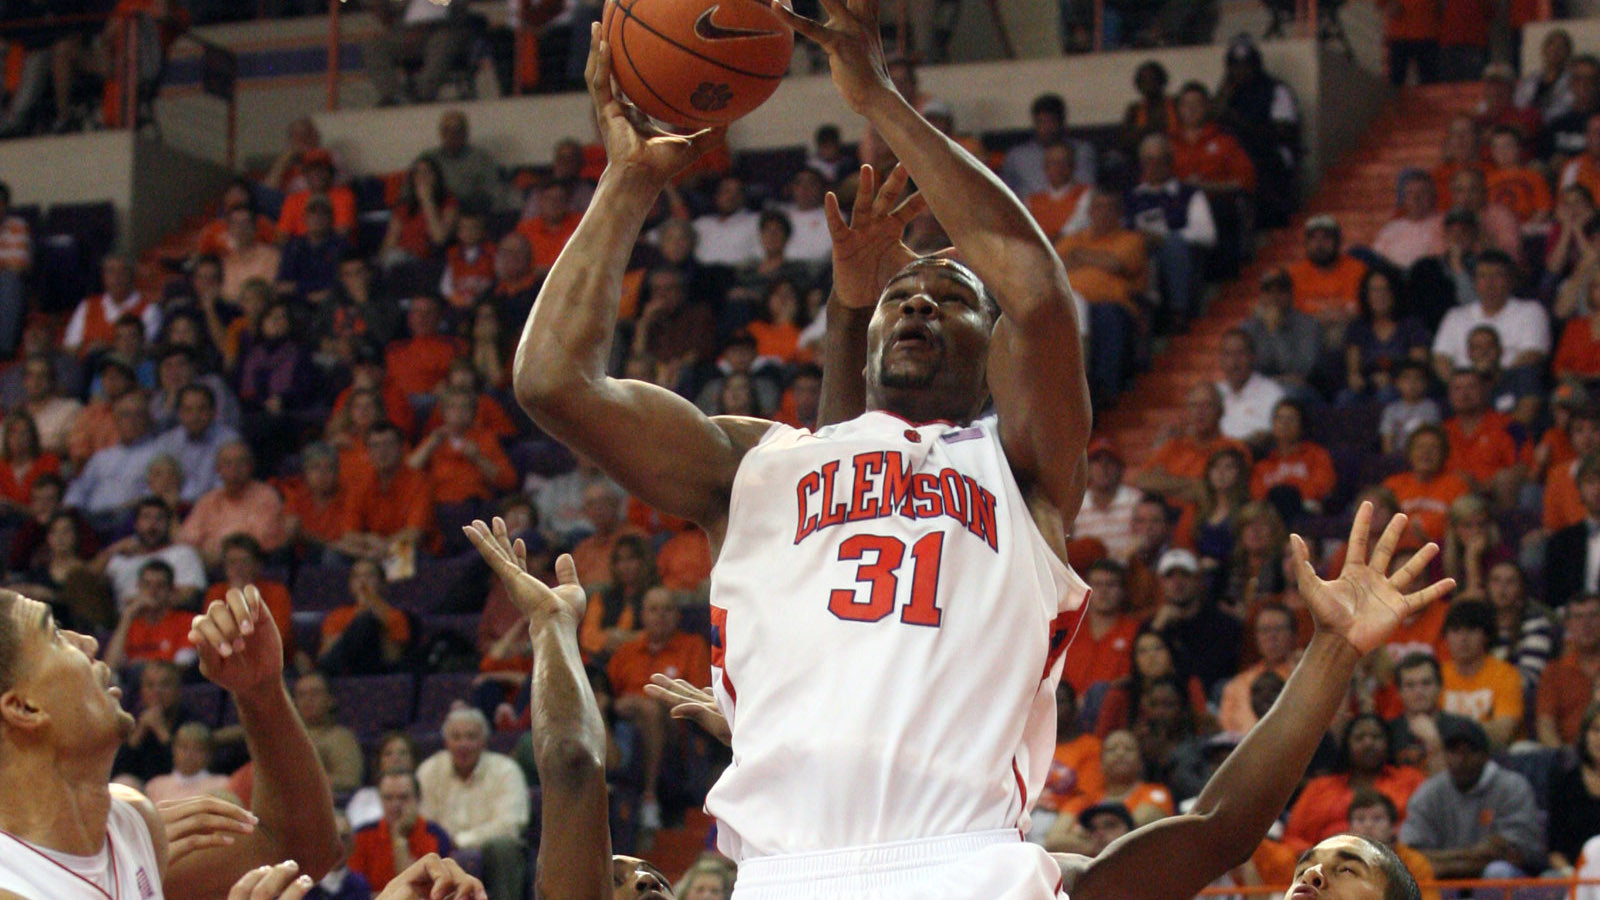 Clemson Falls at Home in ACC Opener to Florida State, 71-66